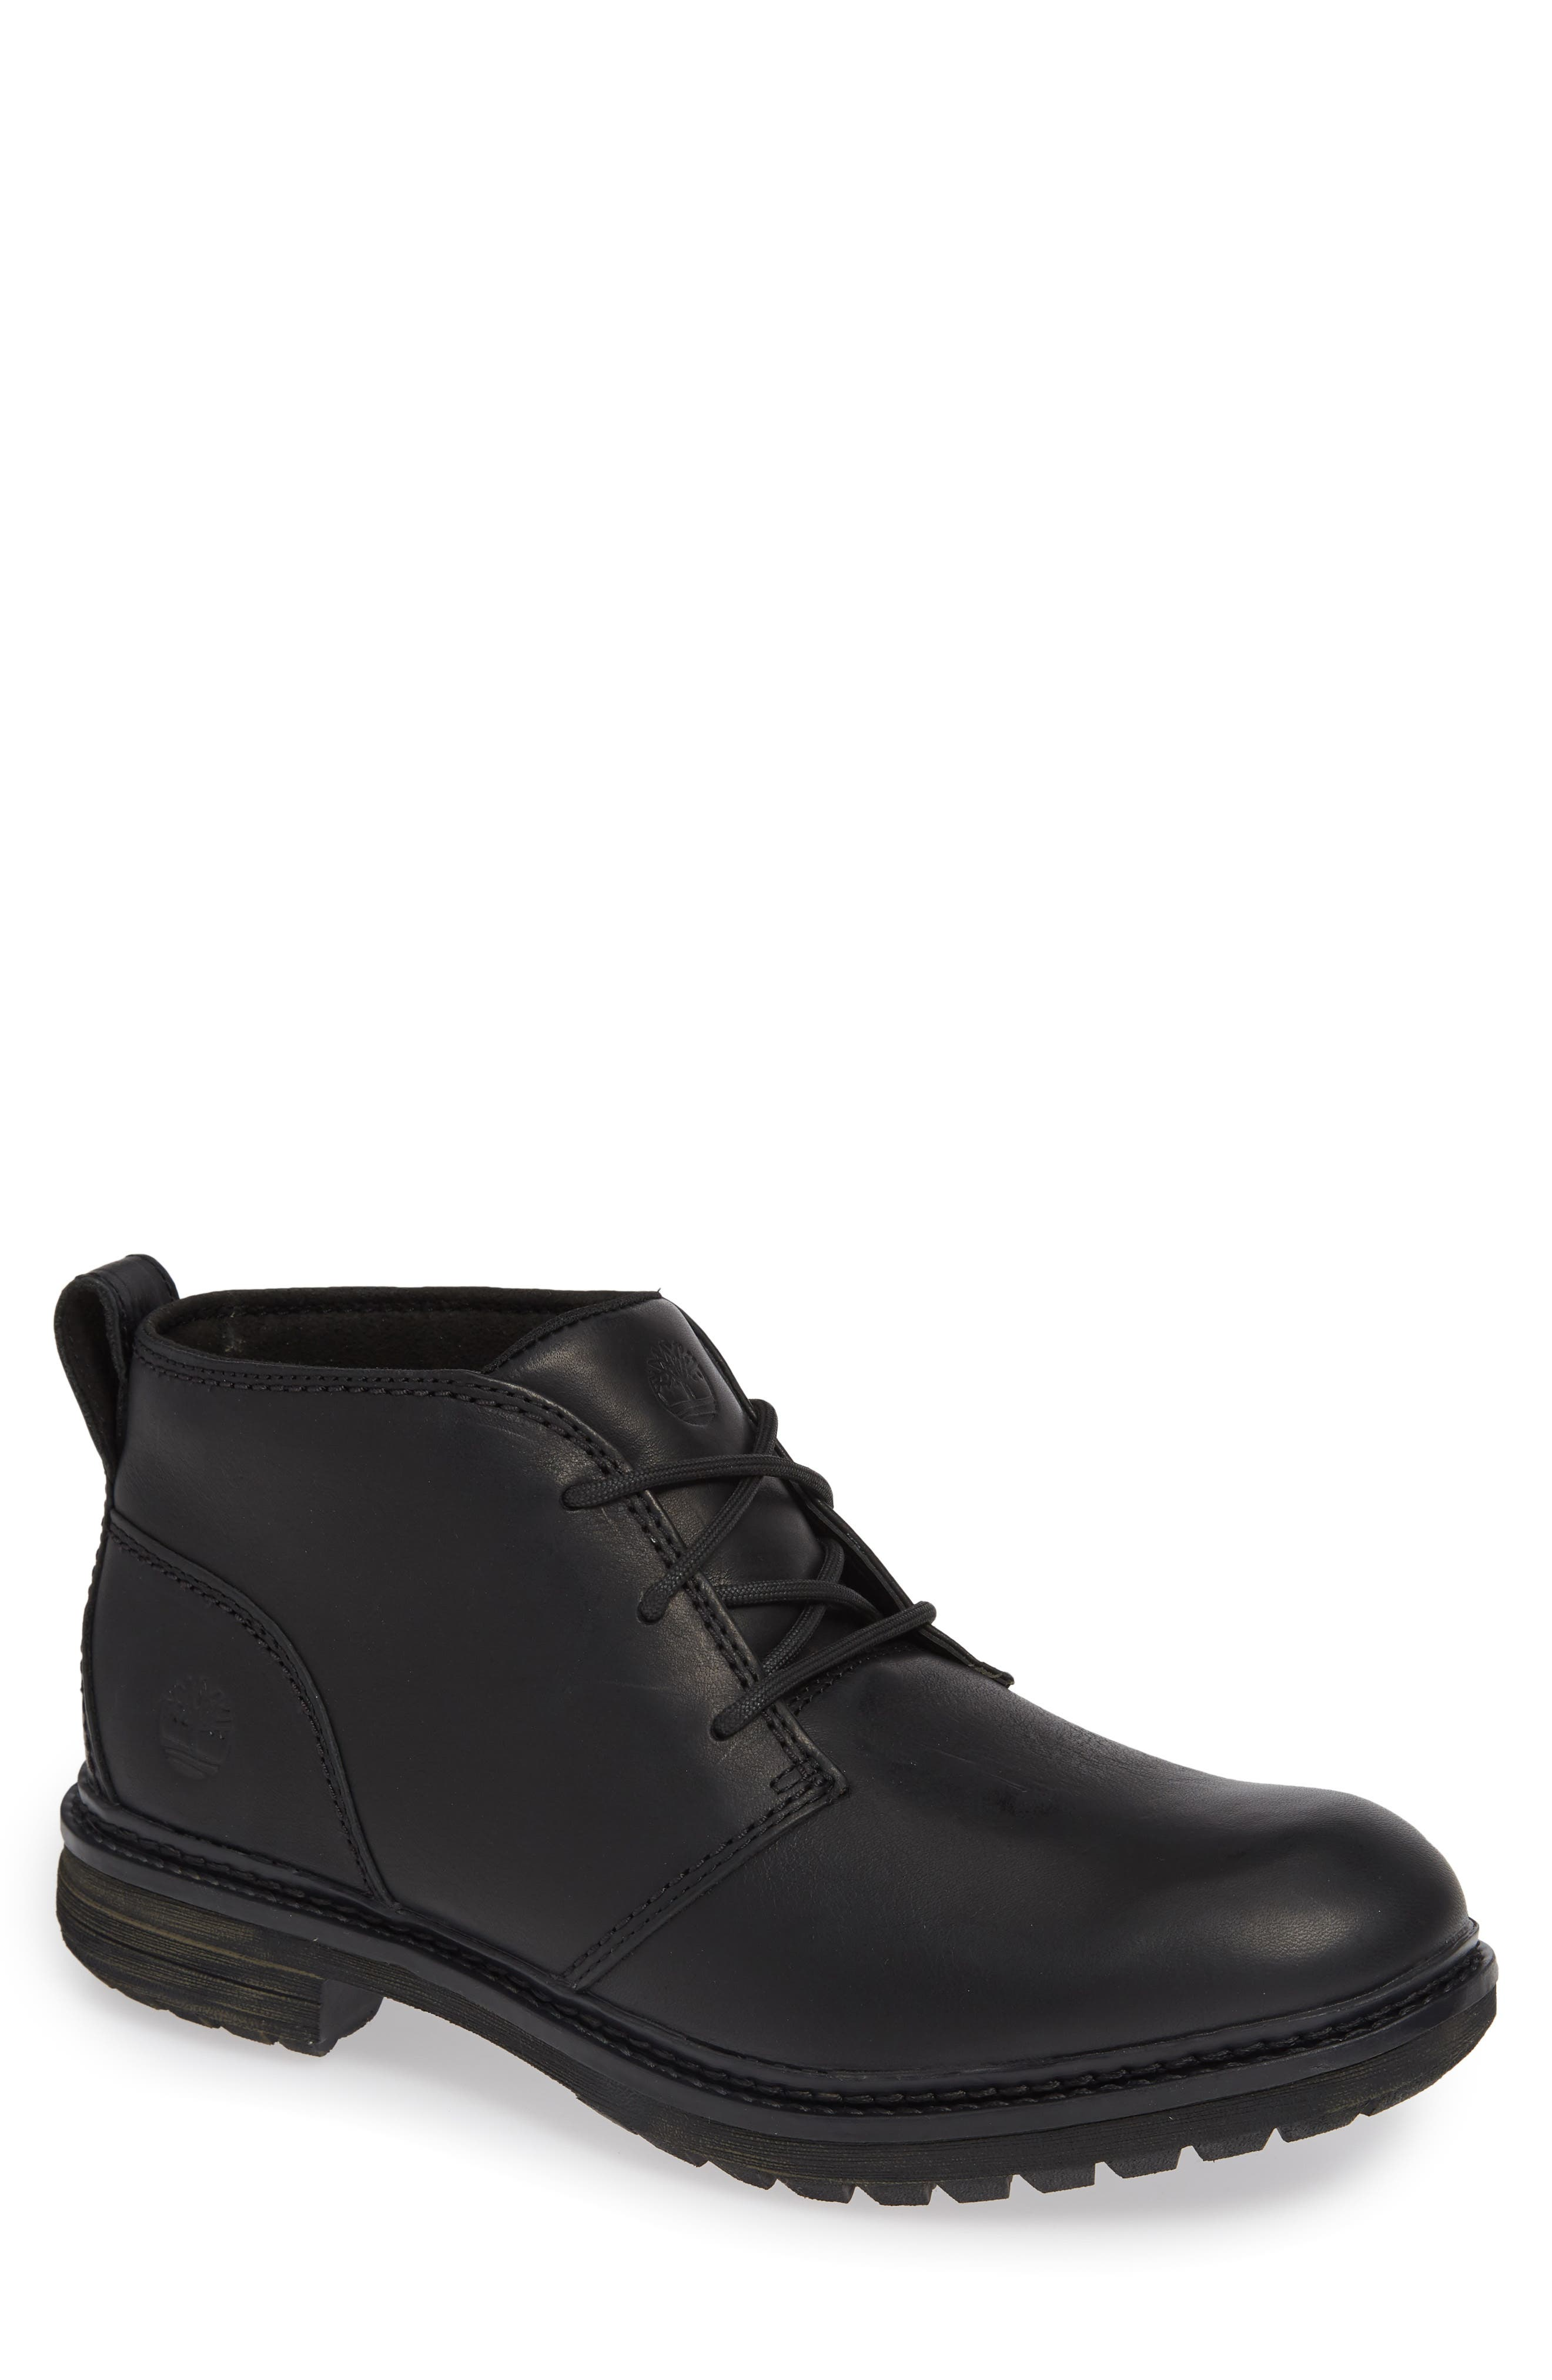 Logan Bay Water Resistant Chukka Boot,                         Main,                         color, BLACK LEATHER